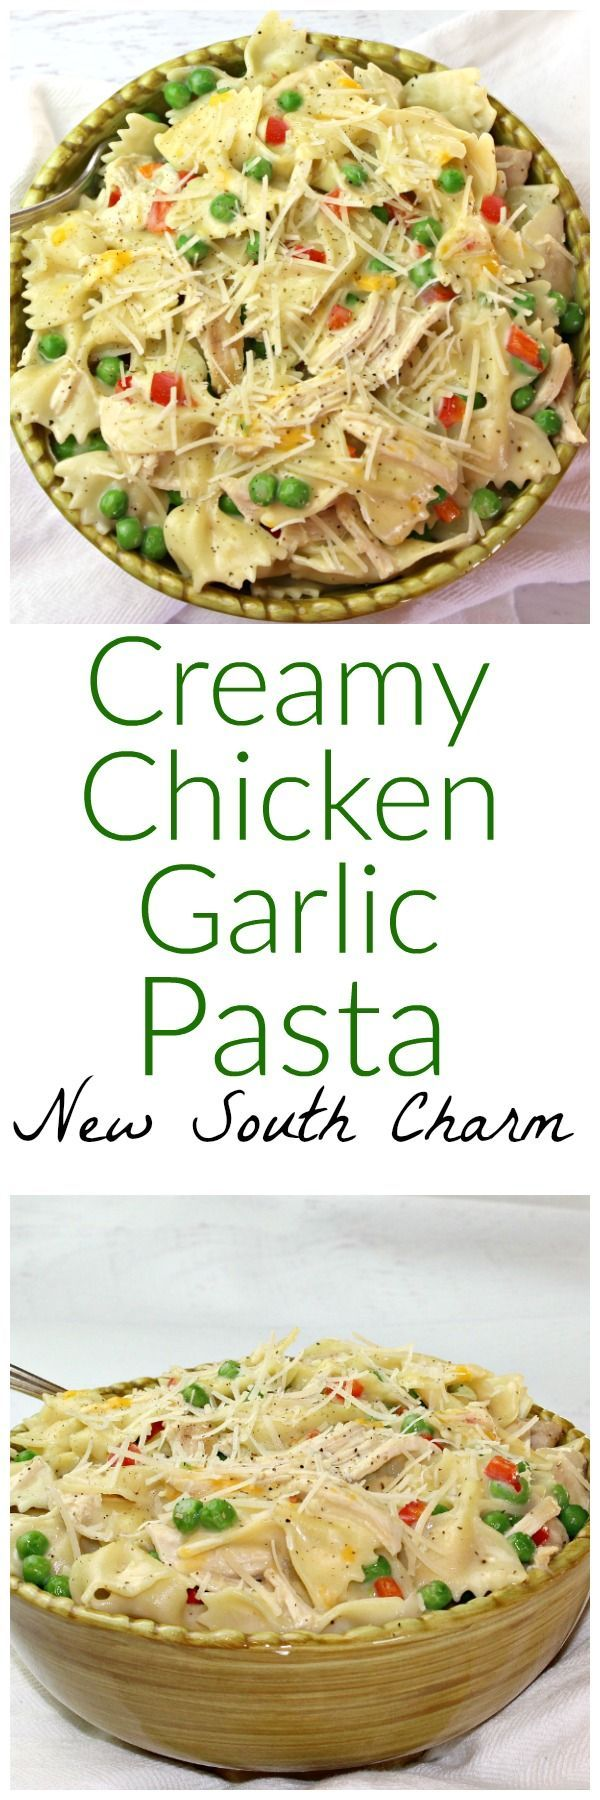 This pasta recipe features chicken and garlic in a creamy sauce that will leave everyone wanting more.  Creamy Chicken Garlic Pasta is a recipe that's easy enough for a weeknight but fancy enough for company.